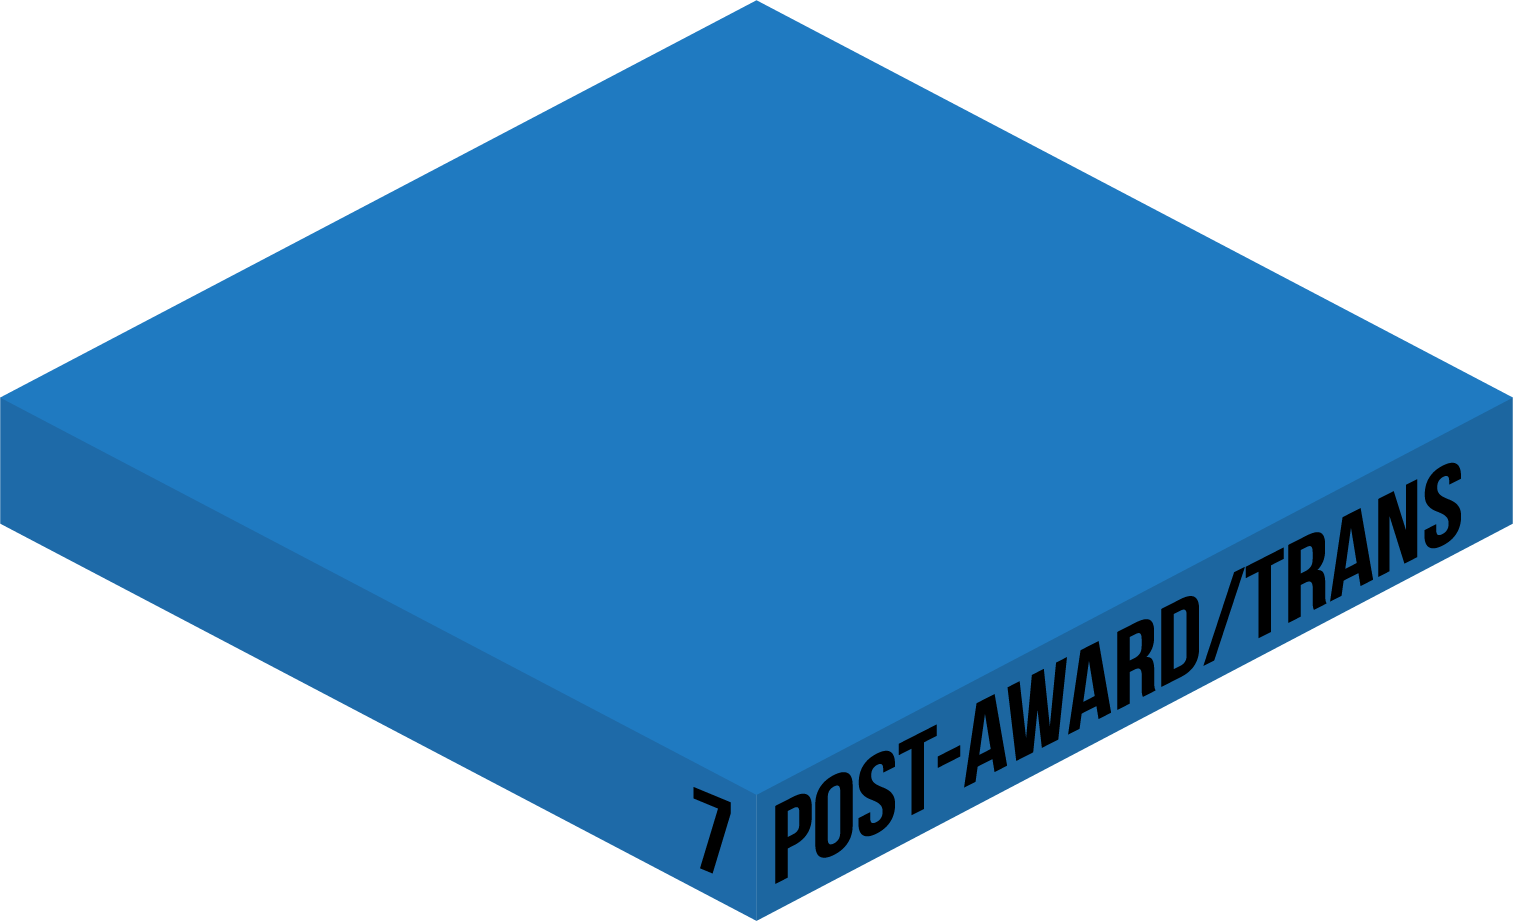 POST-AWARD/TRANSITION